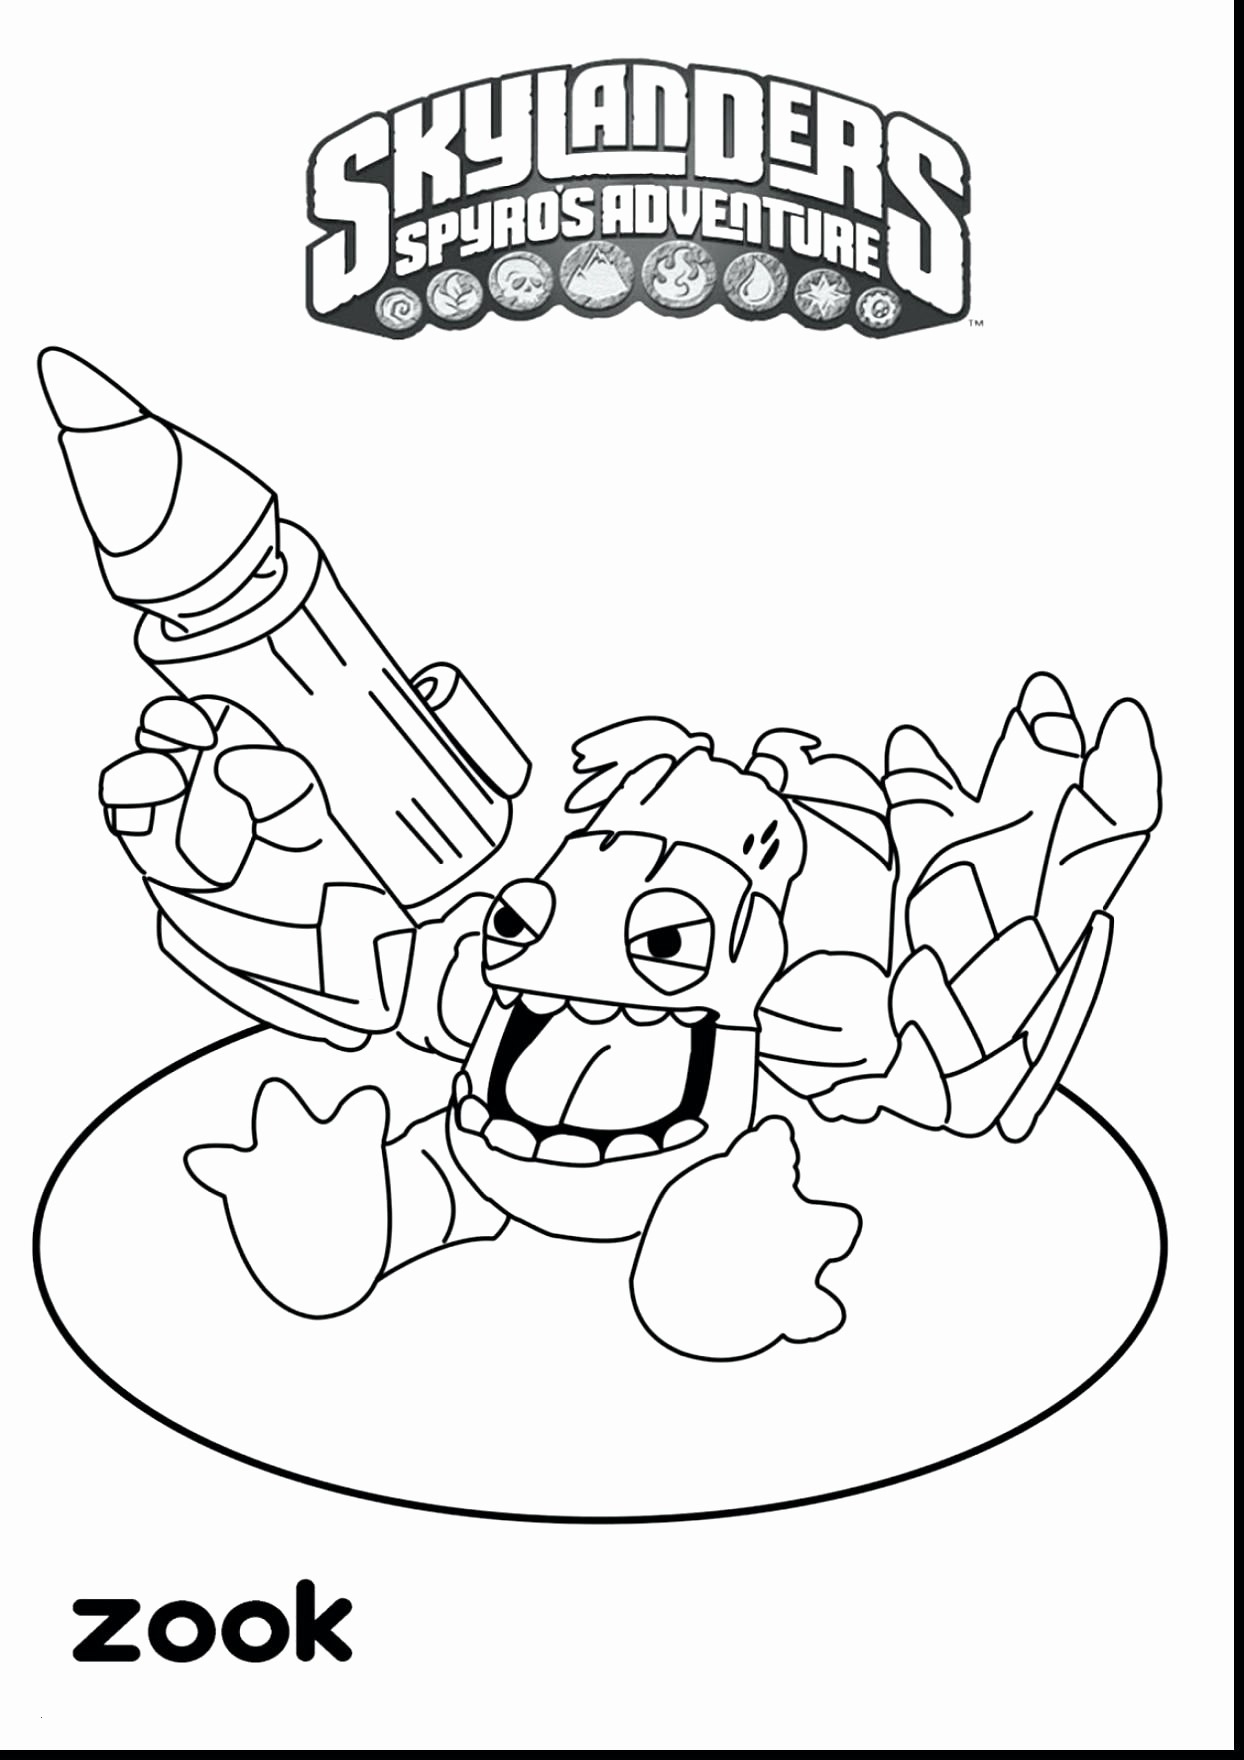 Halloween Skeleton Coloring Pages  Printable 1n - Free For kids